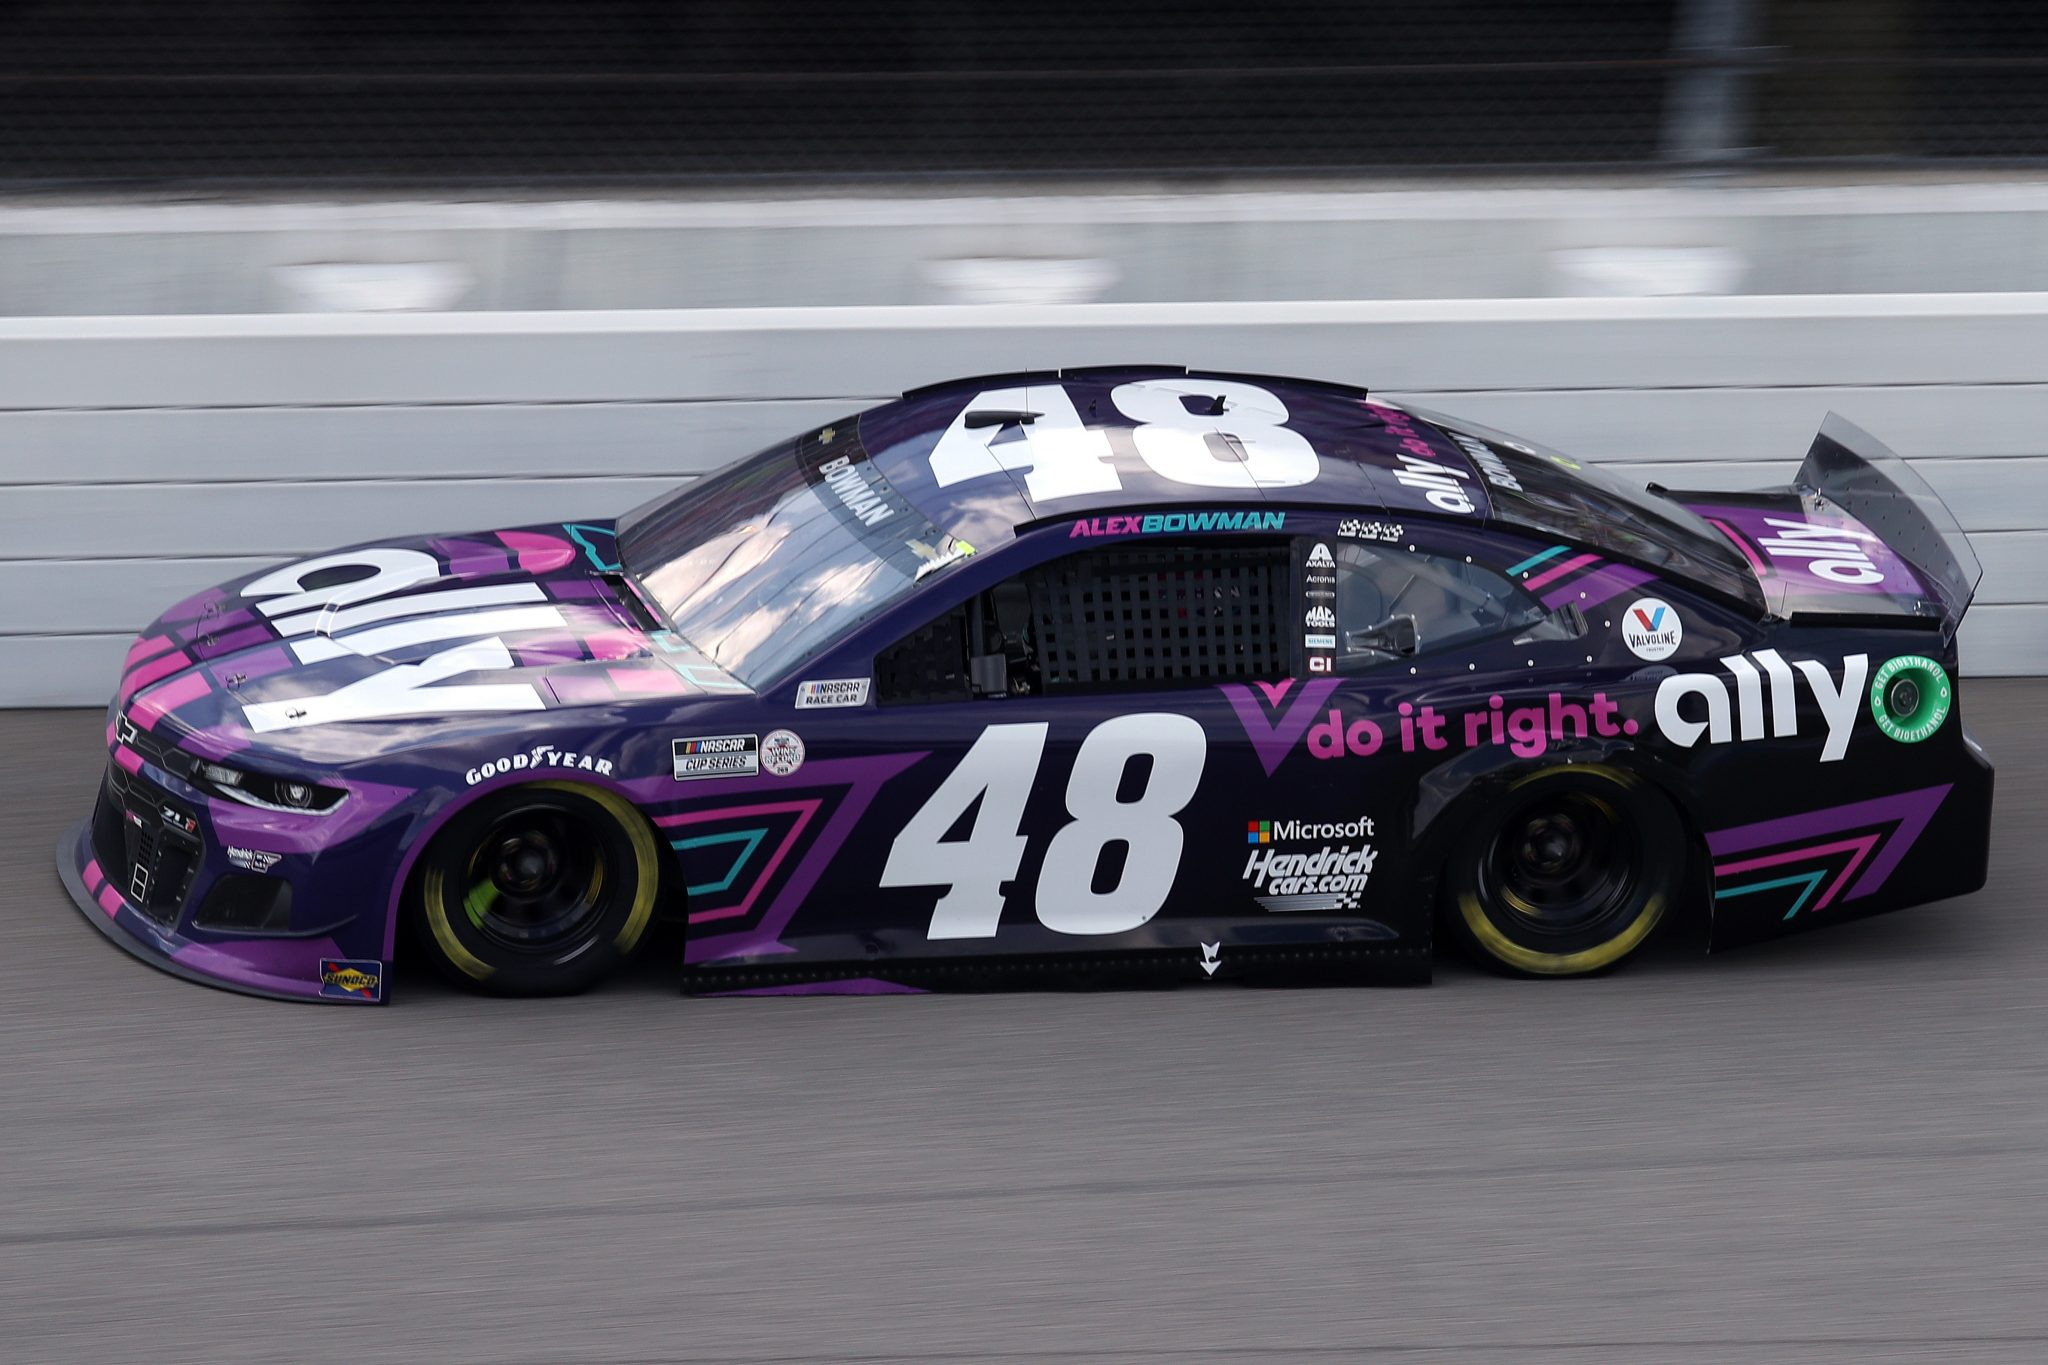 BROOKLYN, MICHIGAN - AUGUST 22: Alex Bowman, driver of the #48 Ally Chevrolet, drives during the NASCAR Cup Series FireKeepers Casino 400 at Michigan International Speedway on August 22, 2021 in Brooklyn, Michigan. (Photo by Sean Gardner/Getty Images) | Getty Images